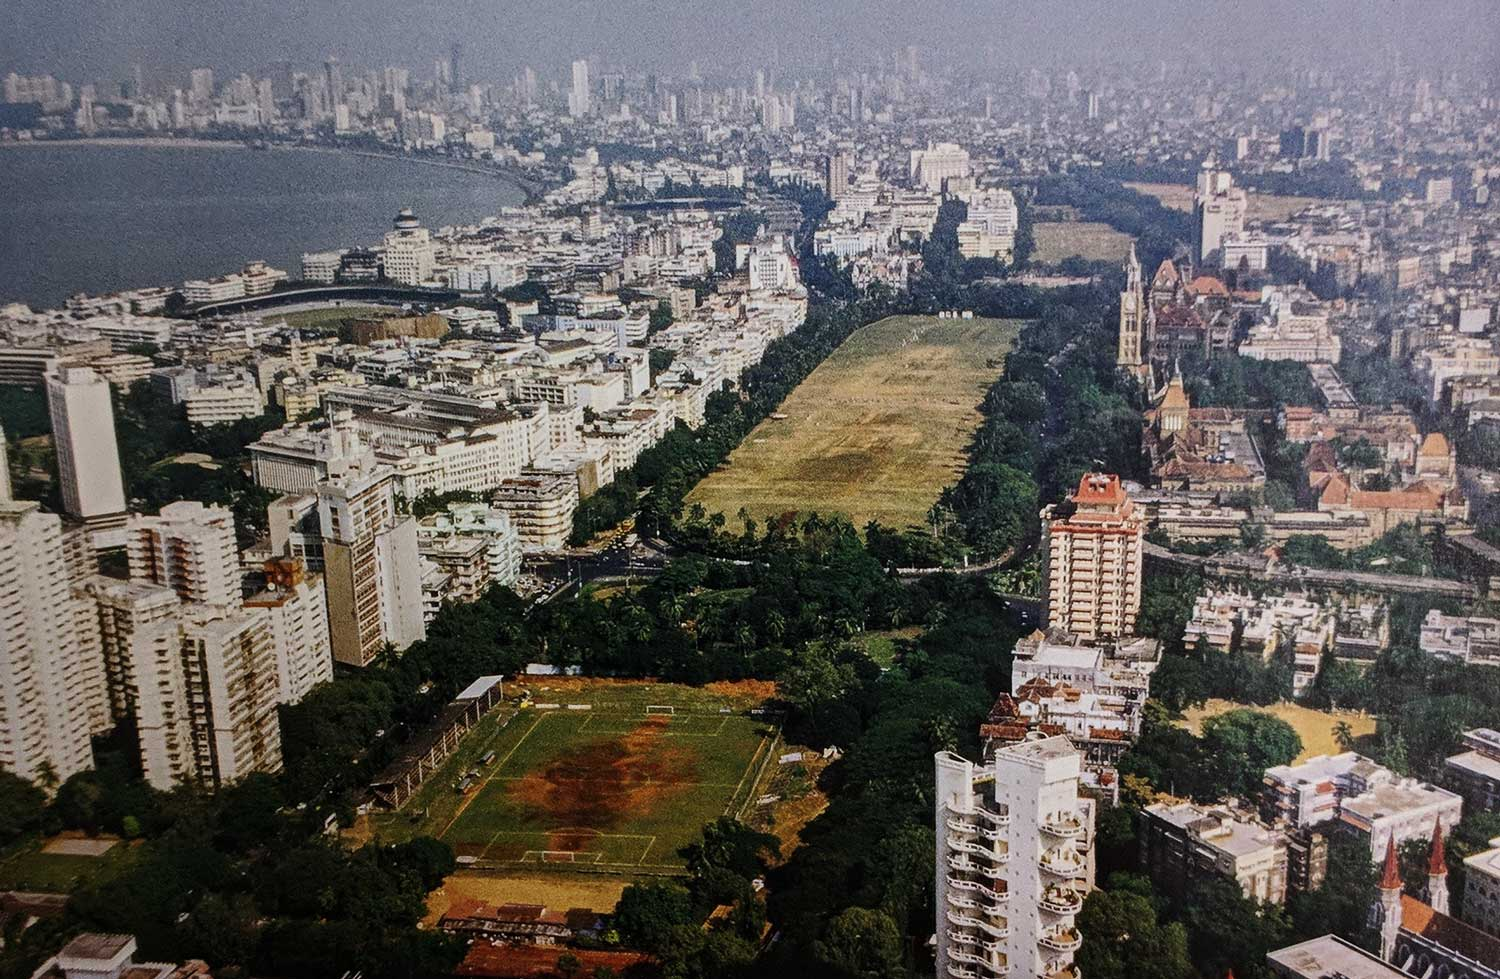 View of Oval Maidan with 19th Century Victorian Buildings (right) and 20th Century Art Deco Buildings (left) on either side © Book: Above Bombay, Jehangir Sorabjee